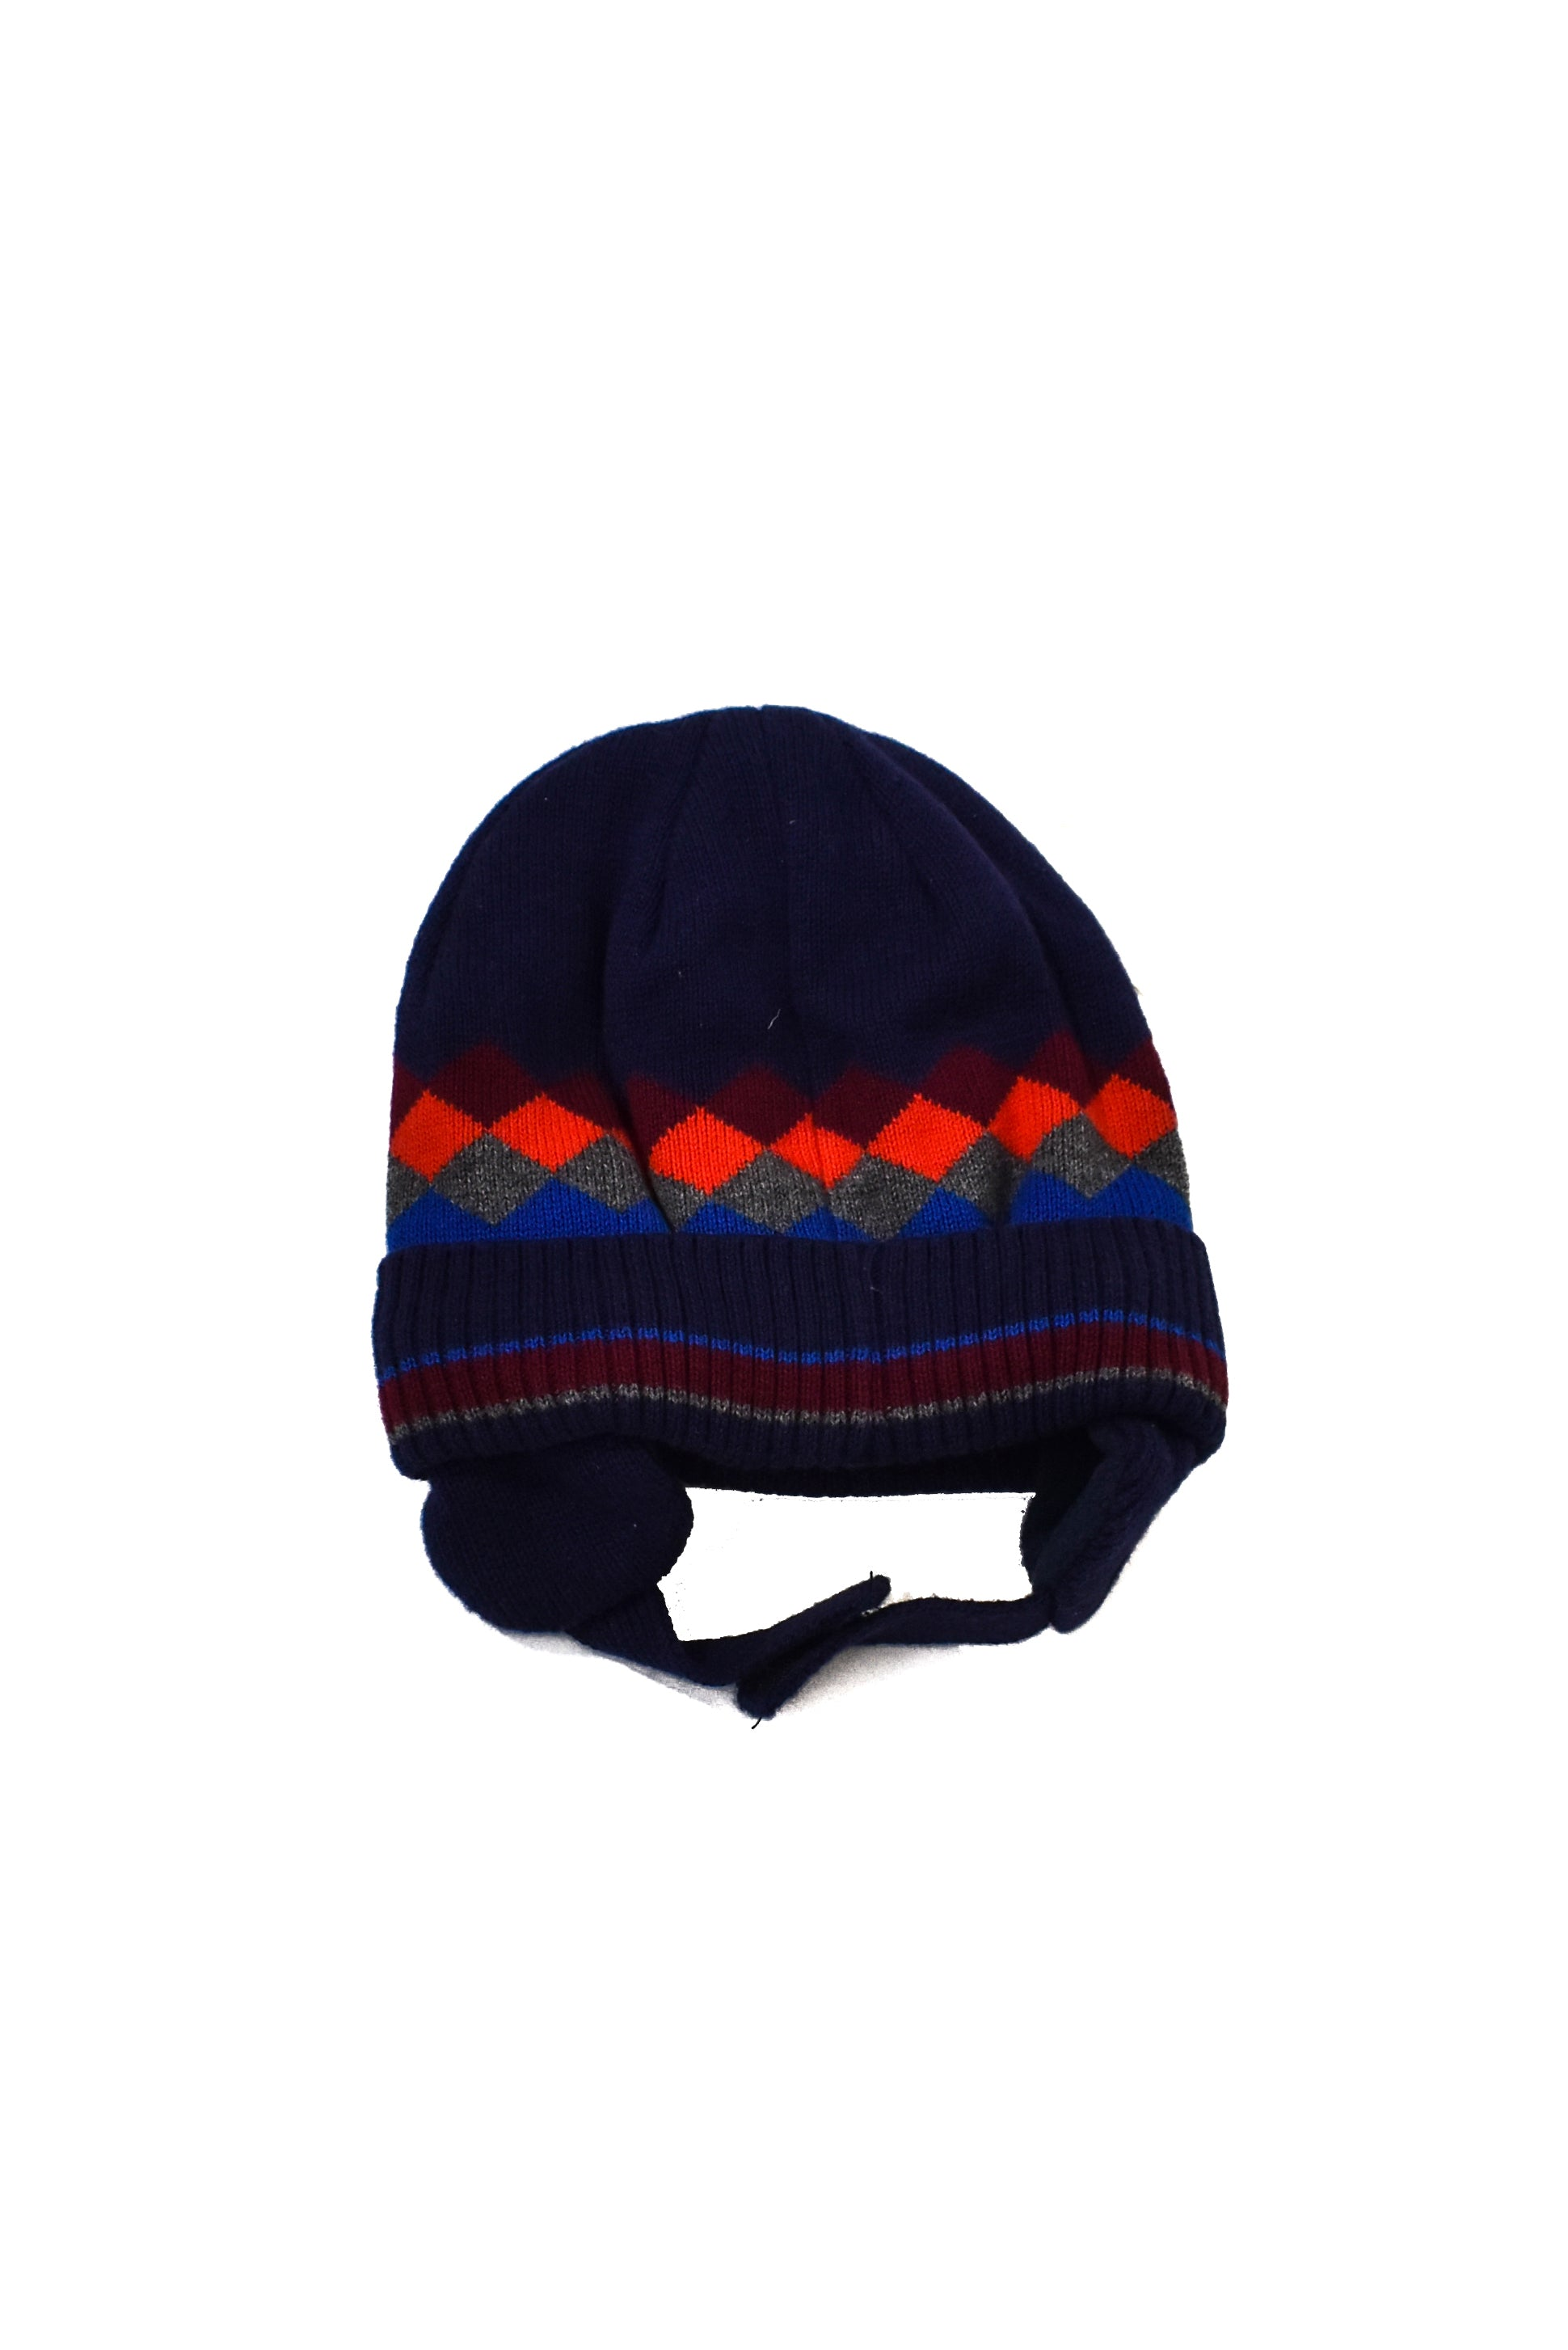 2a8064045739 10016942 Tommy Hilfiger Baby~Hat 6-12M at Retykle